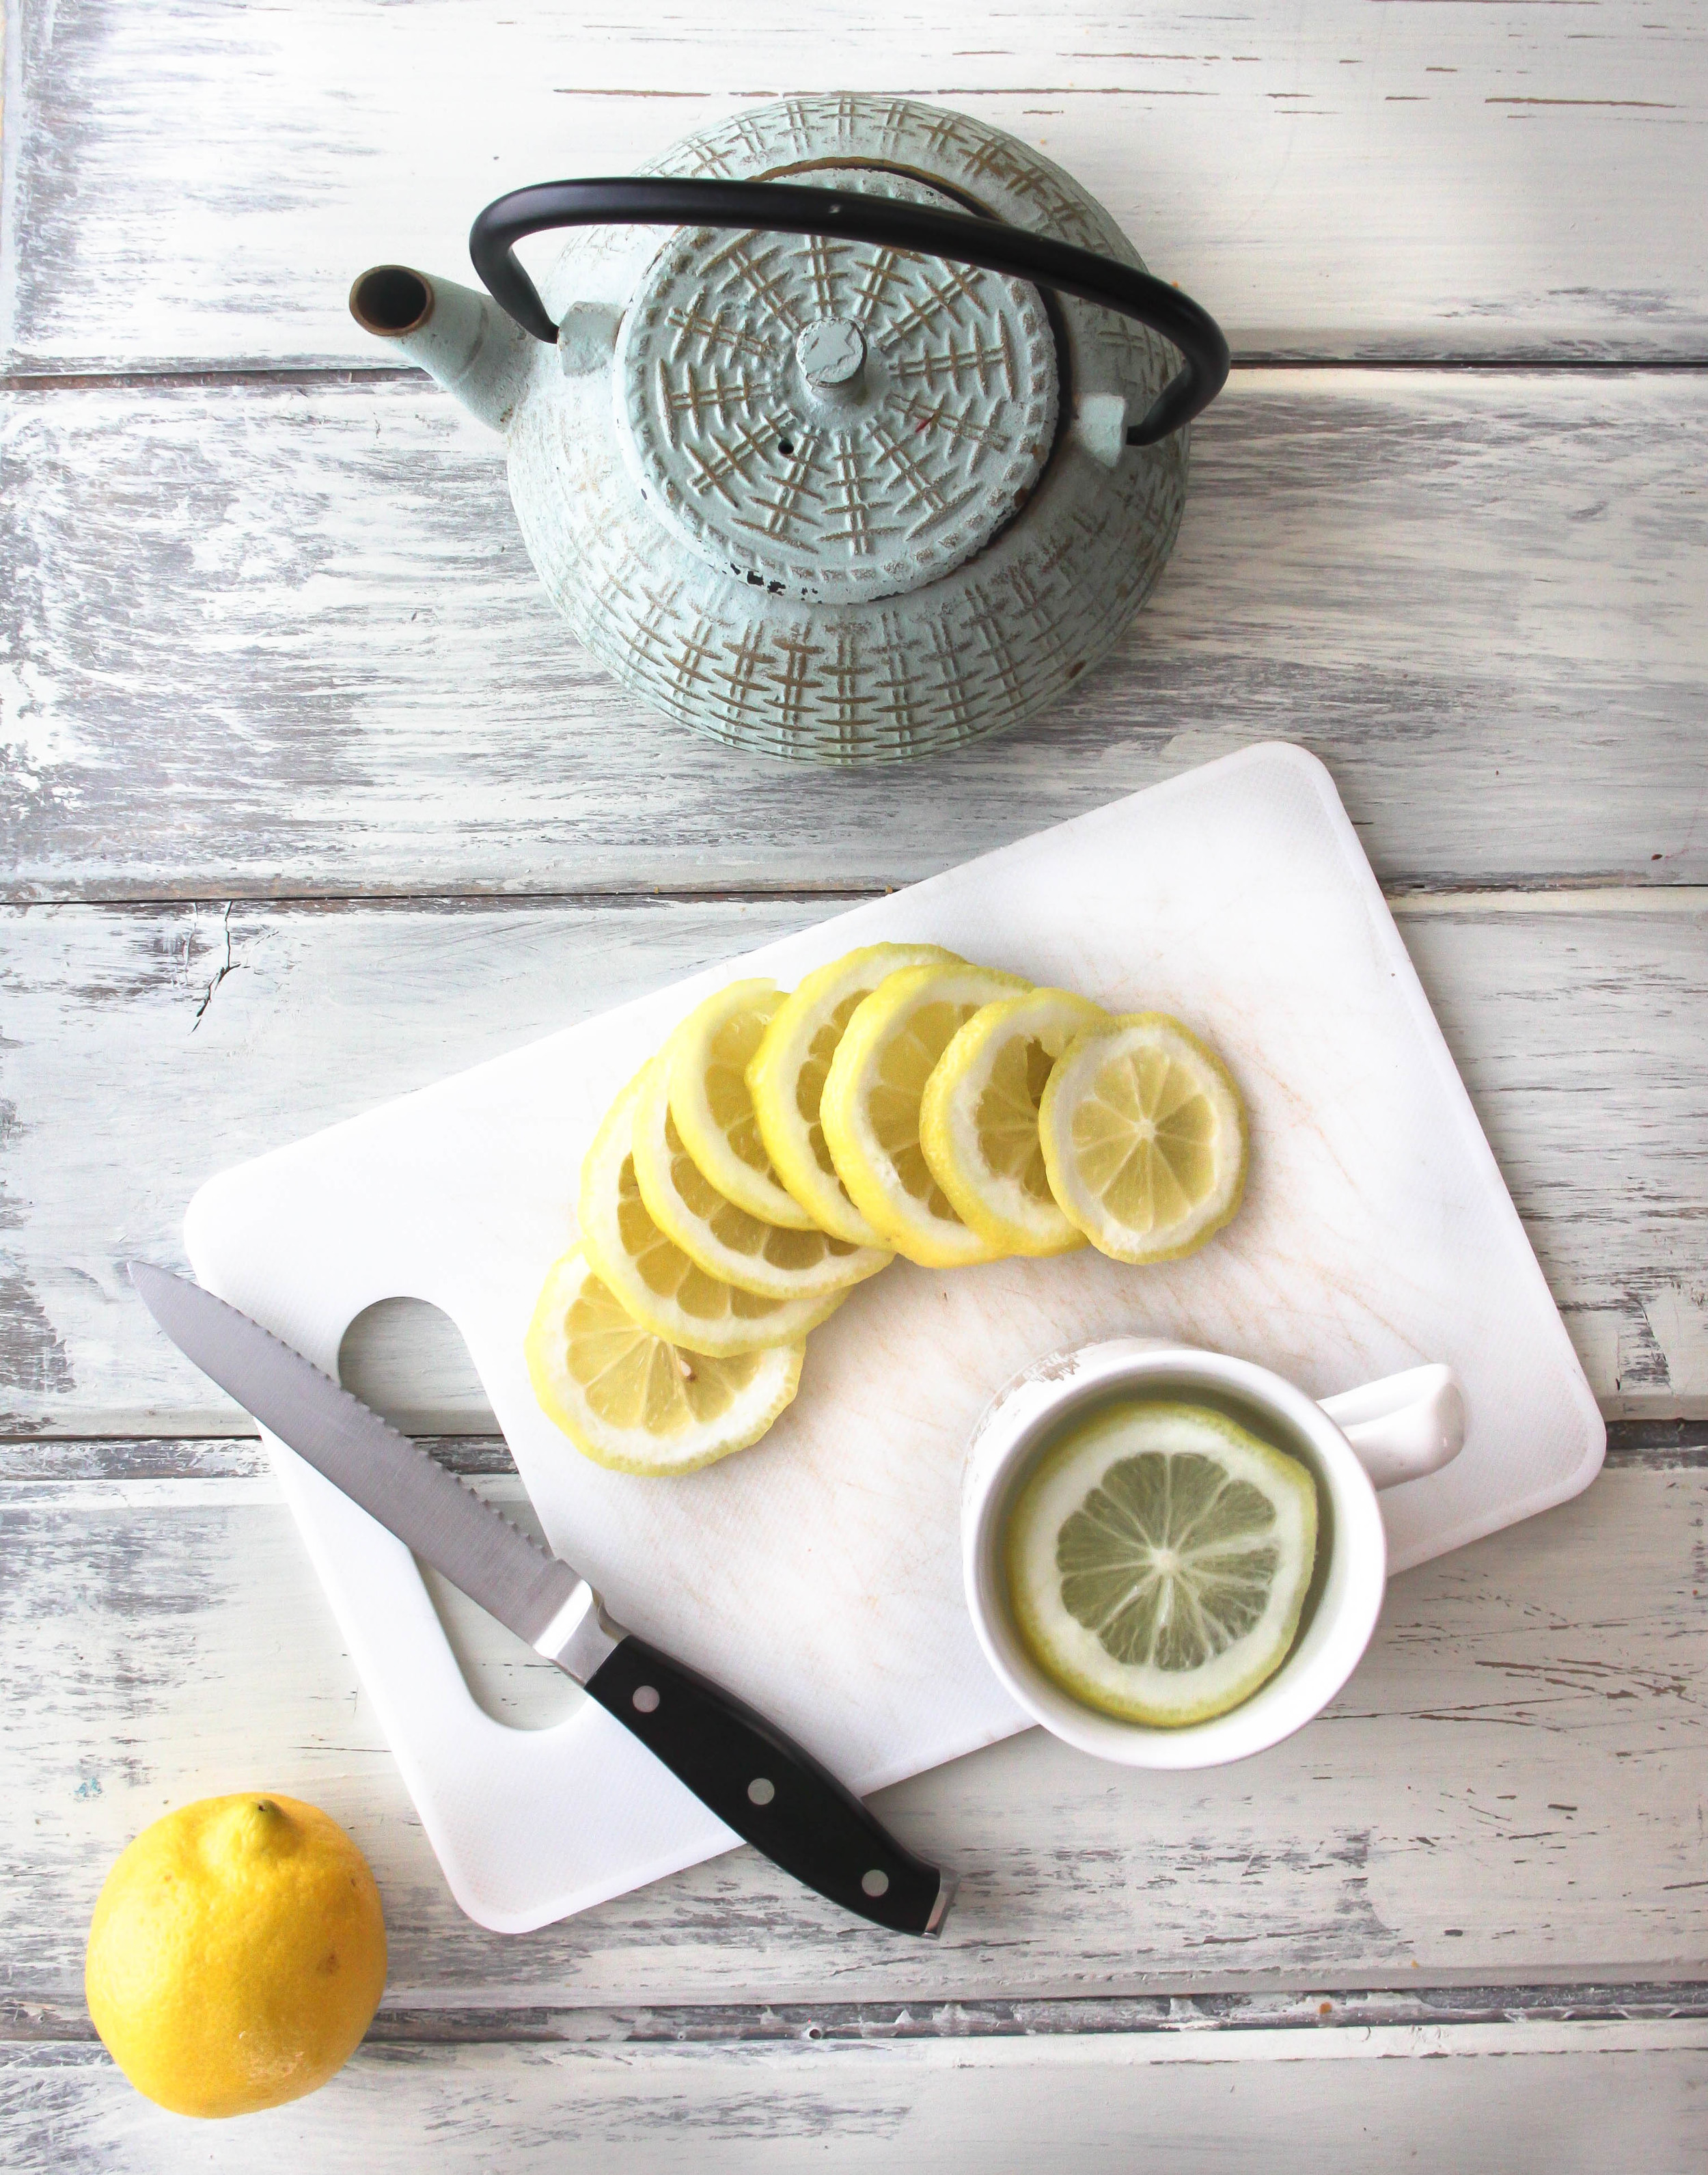 Benefits of drinking hot lemon water